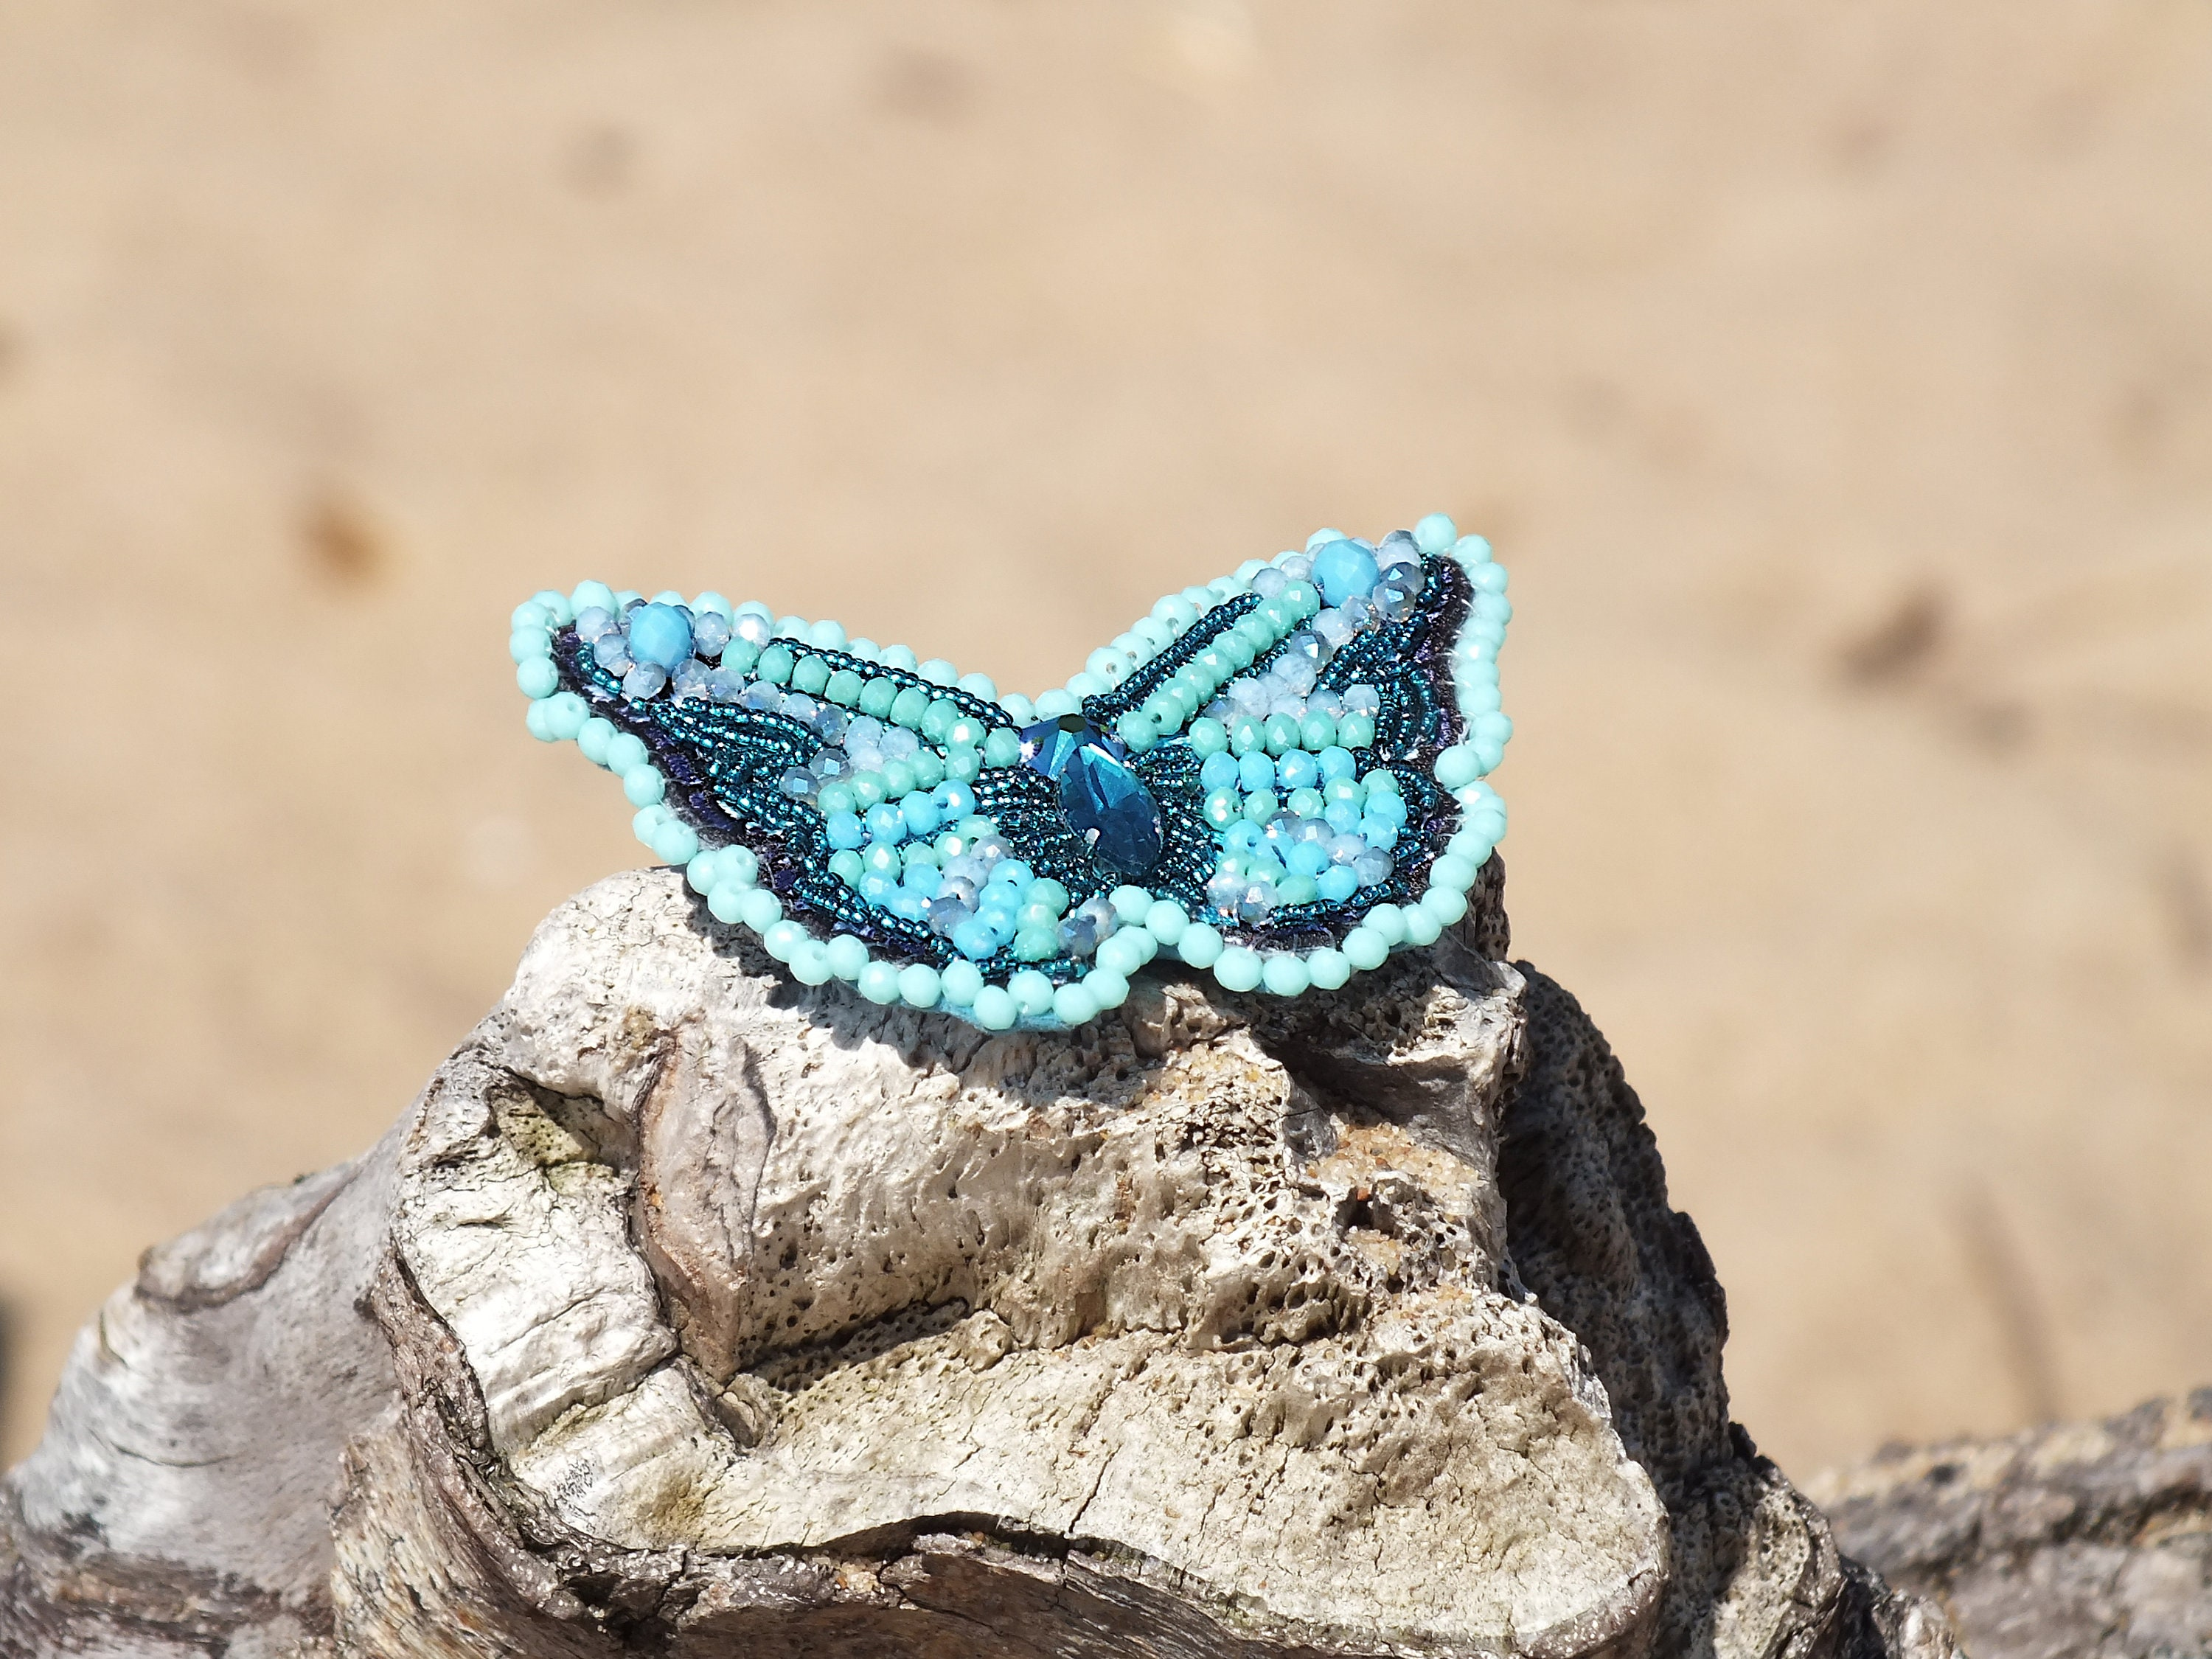 913942761c6 Butterfly brooch Embroidery brooch Beaded butterfly jewelry Swarovski  crystal Gift for wife Mother day brooch Gift for her